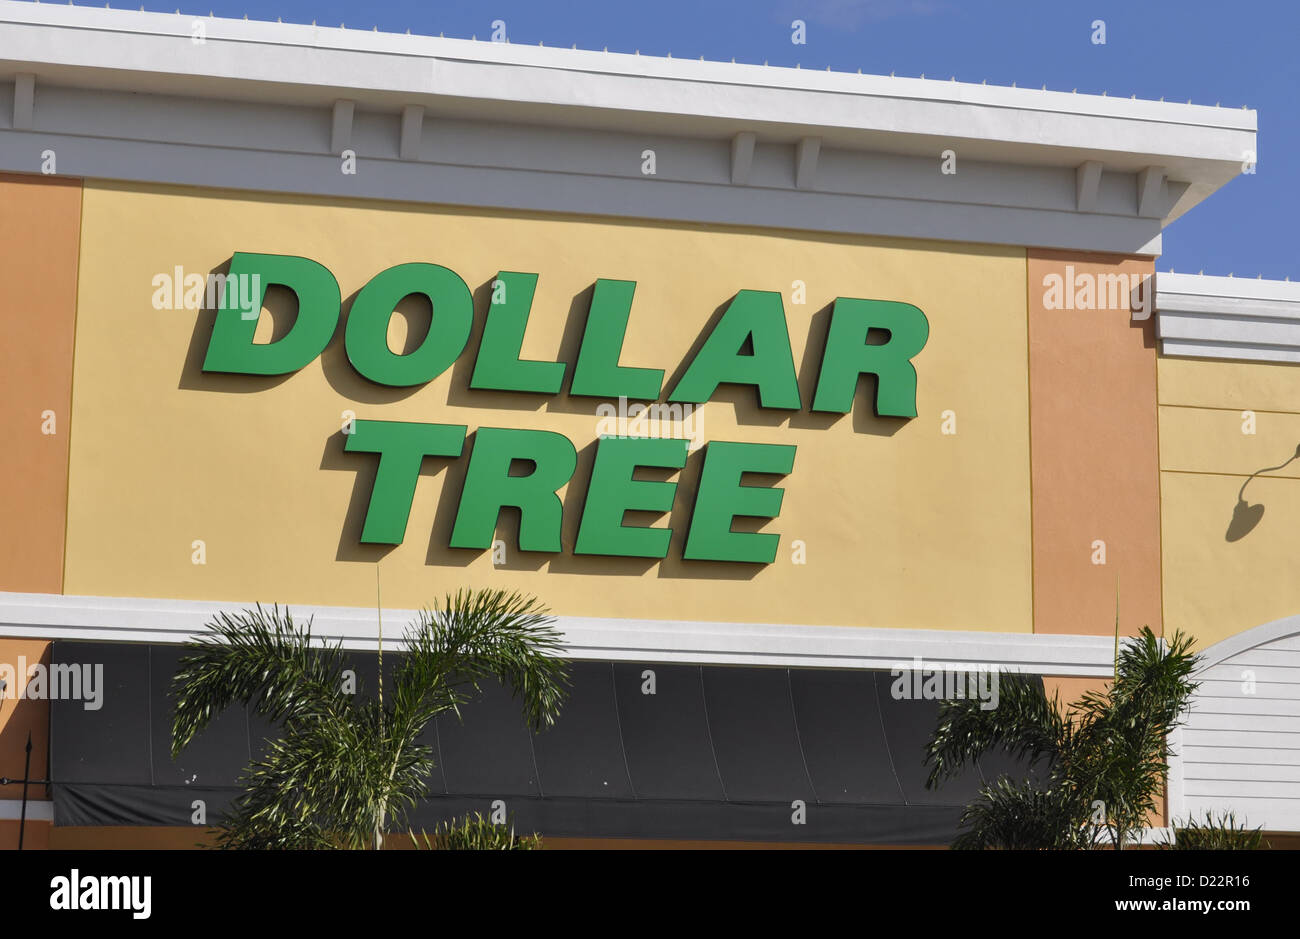 Dollar Store Sign Stock Photos & Dollar Store Sign Stock Images - Alamy